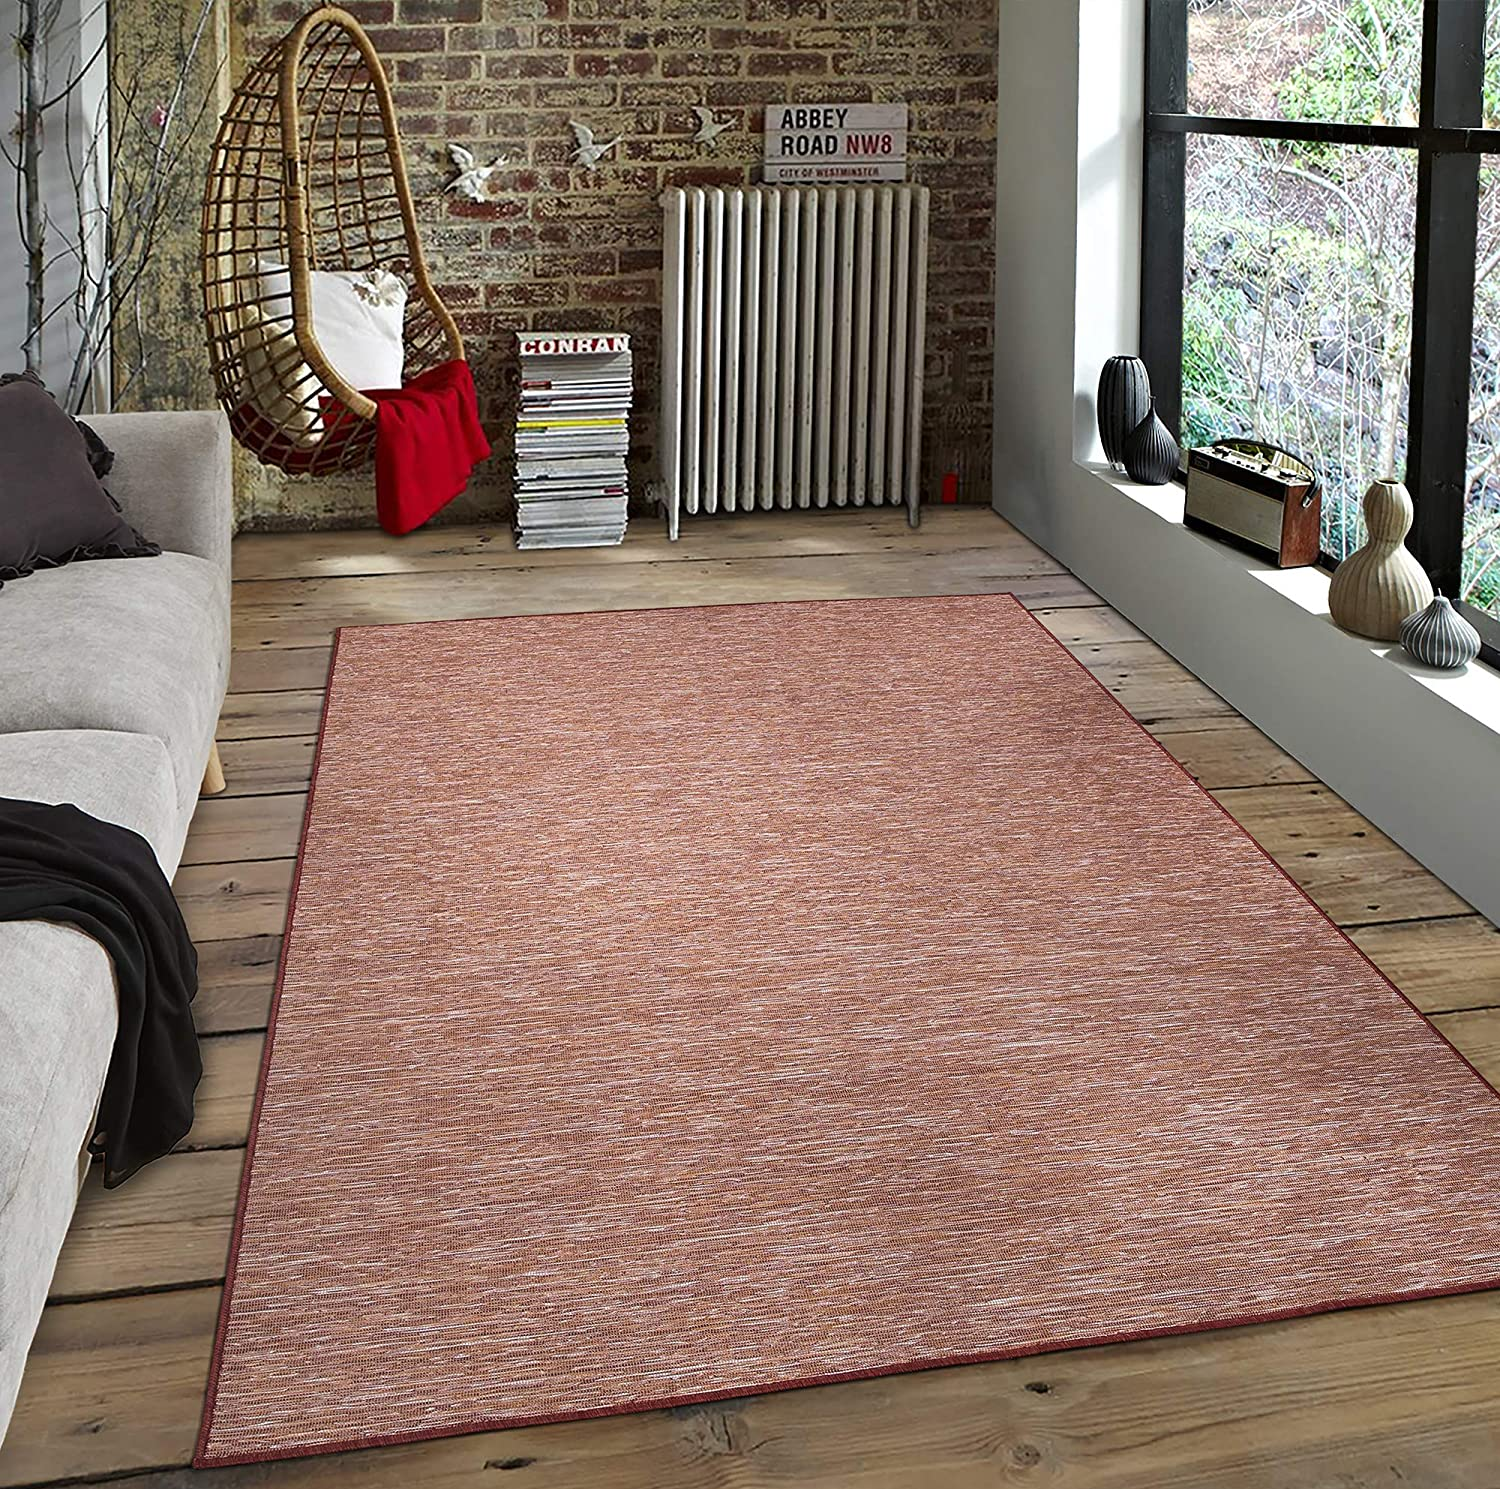 Sweethome Stores Reversible Indoor/Outdoor Area Rug, 5X7, Red